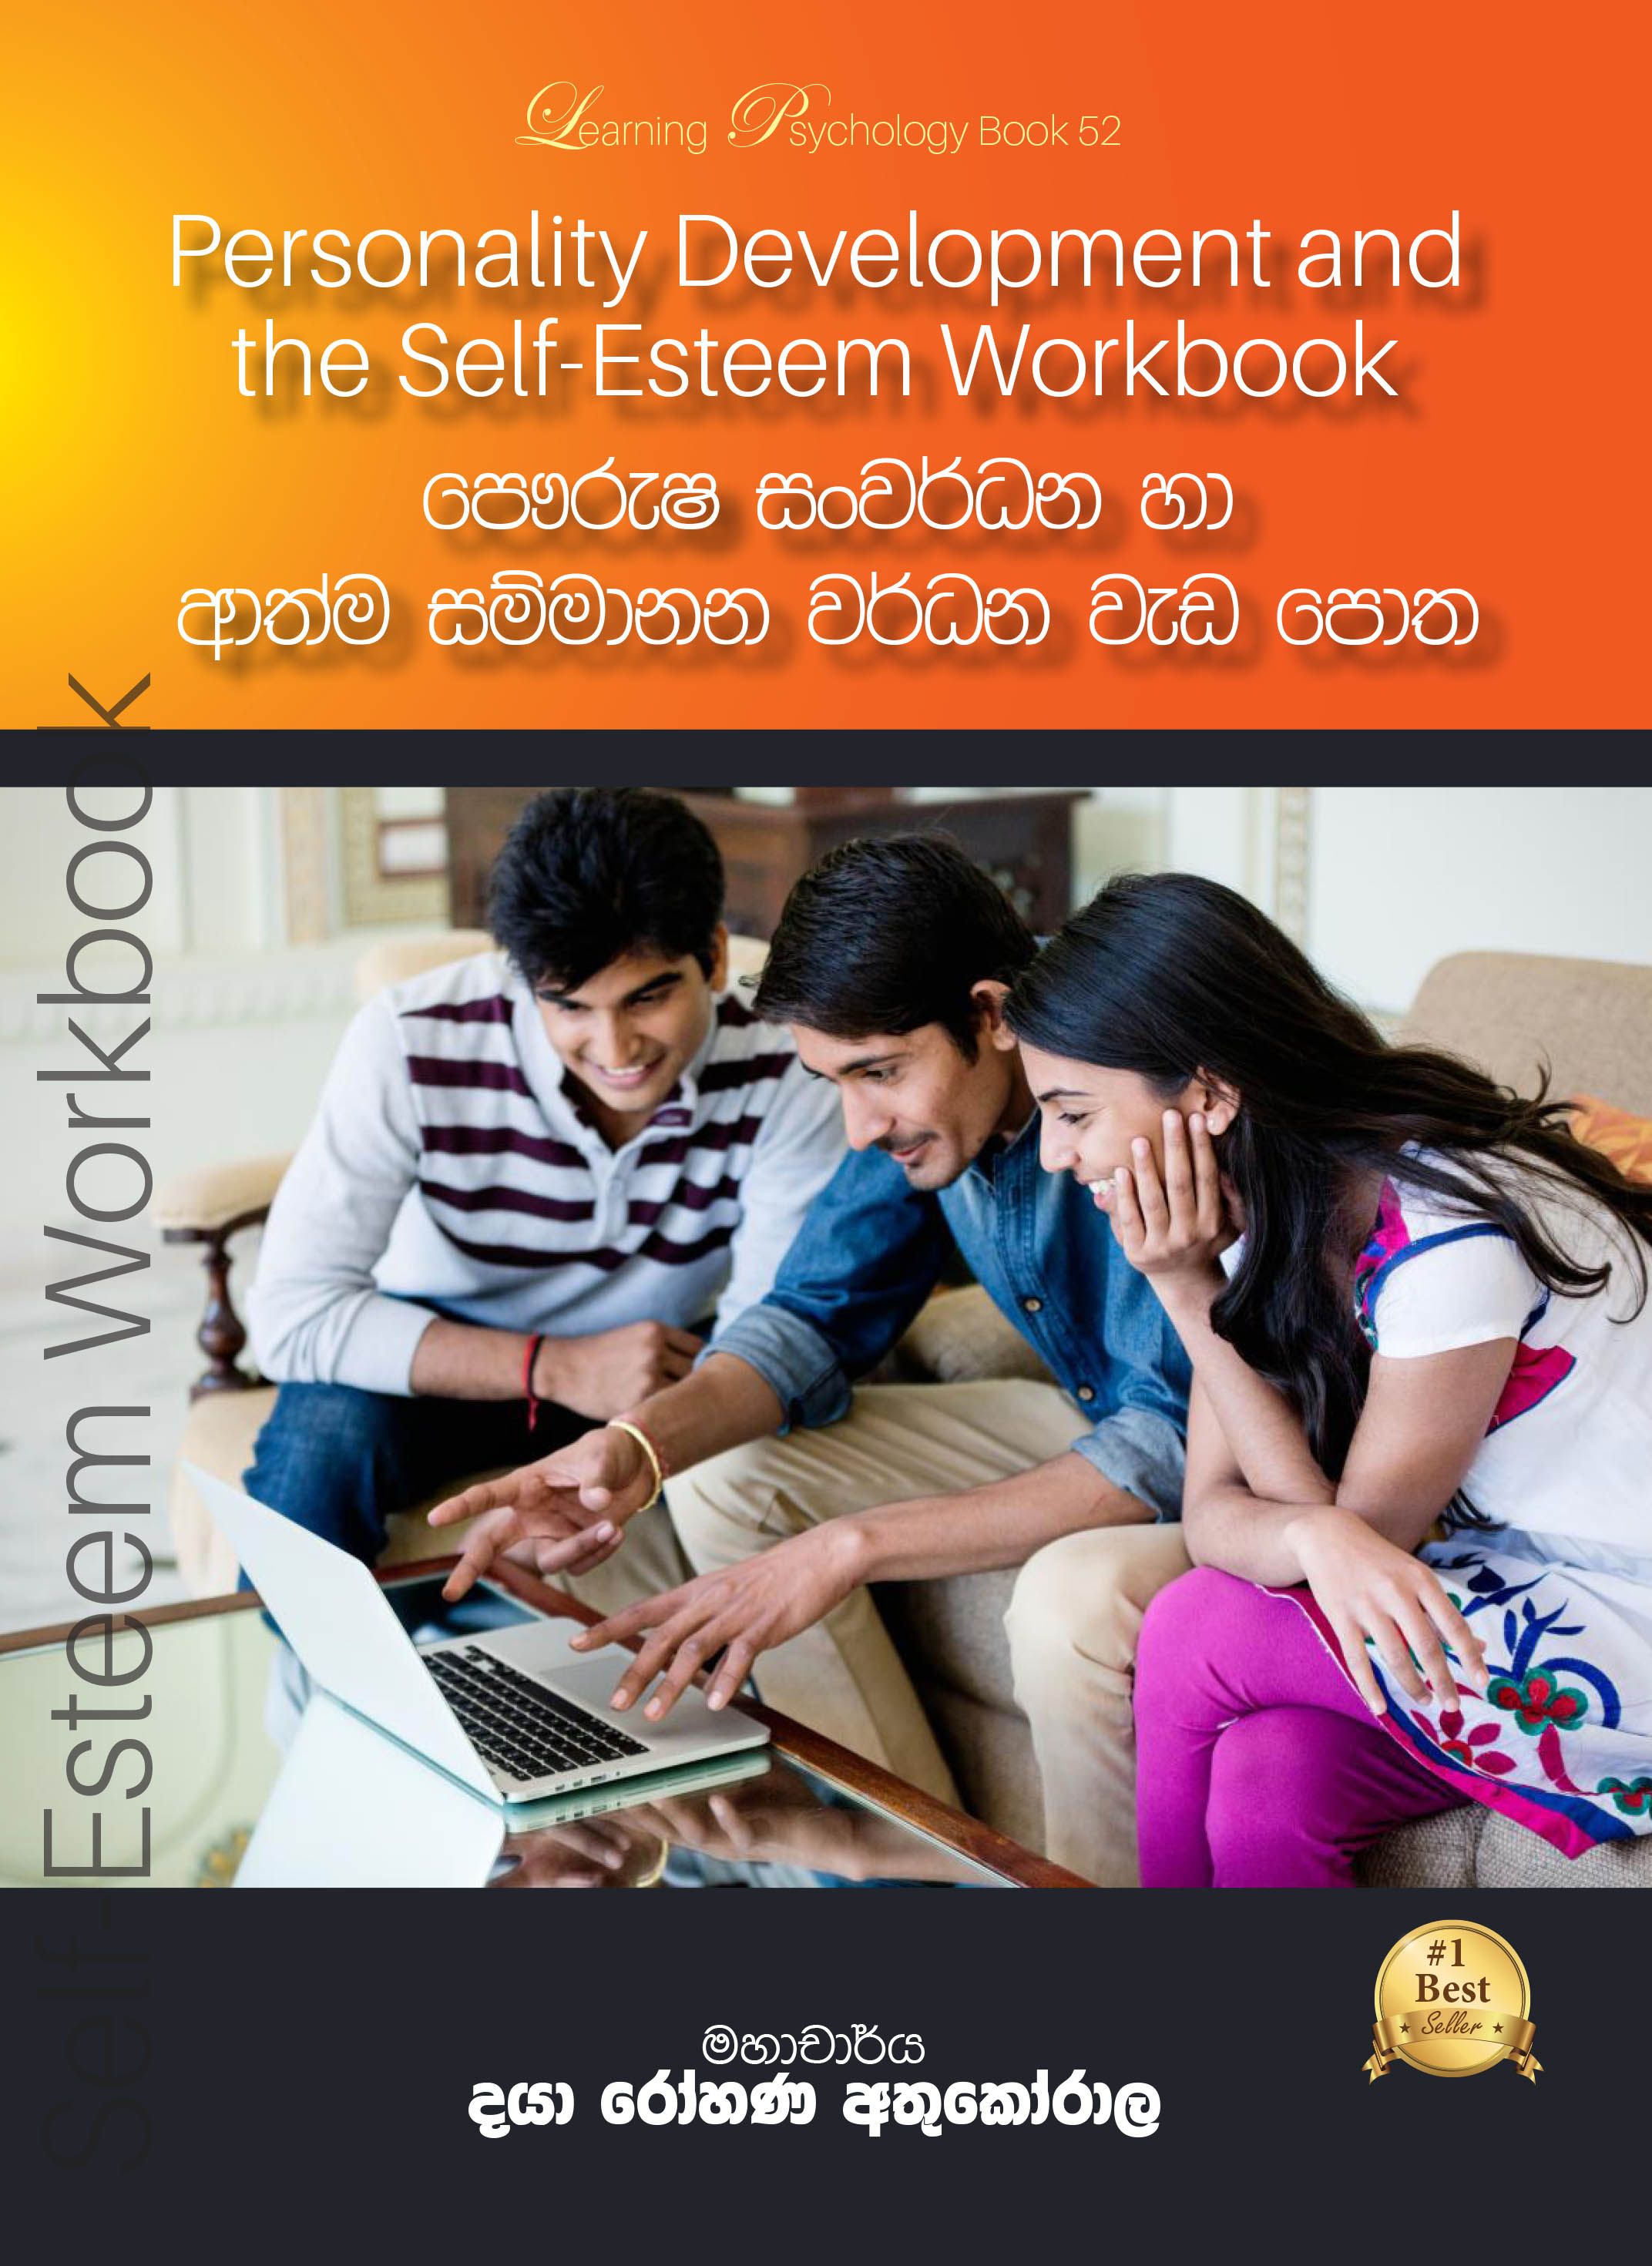 Personality Development and the Self-Esteem Workbook